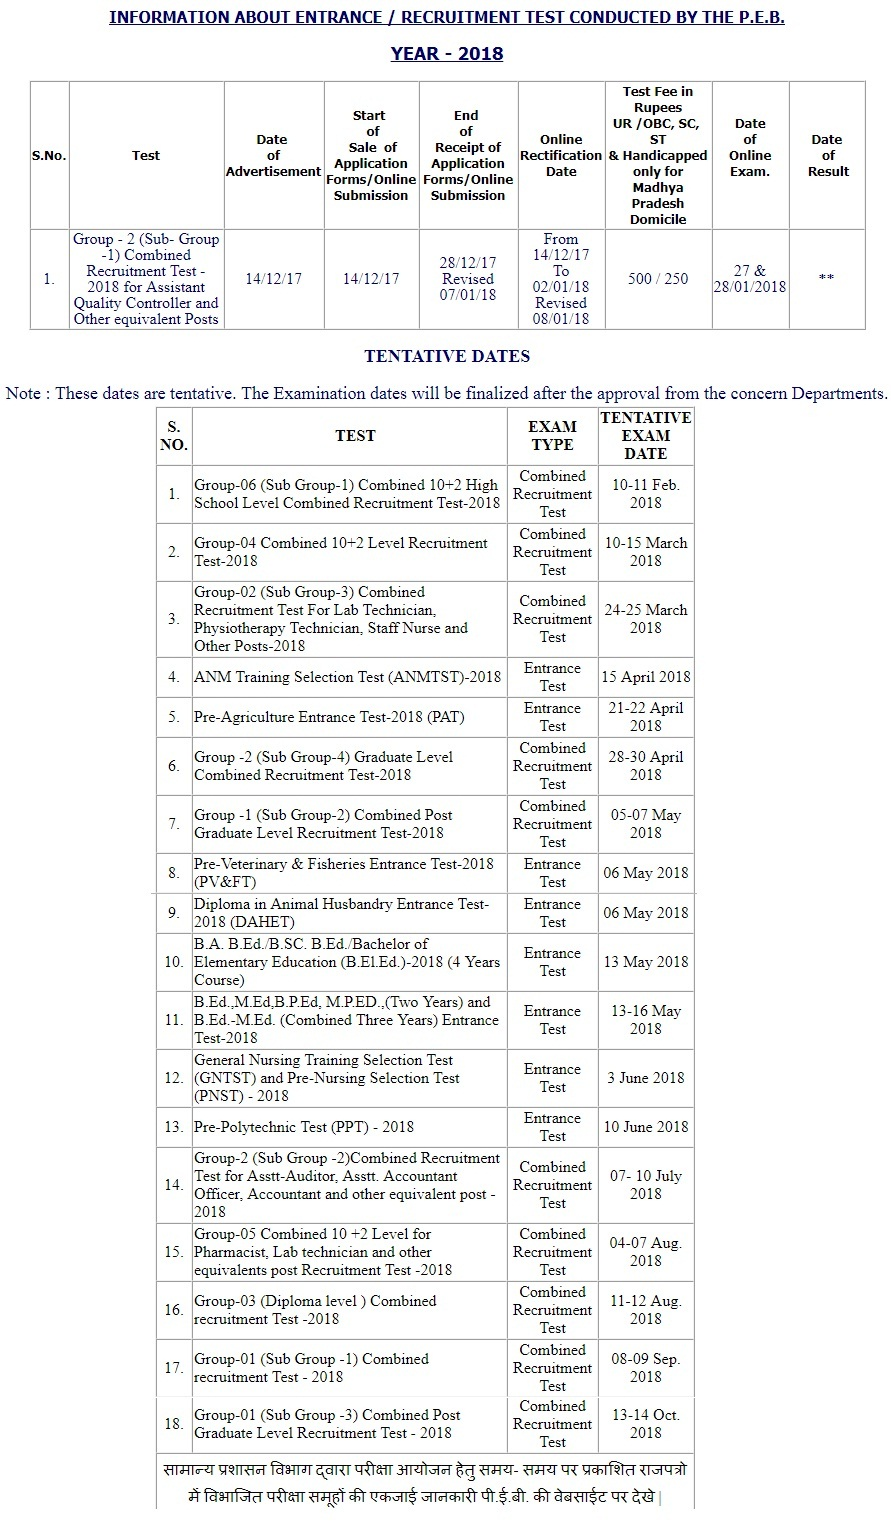 mp vyapam exam calendar 2018